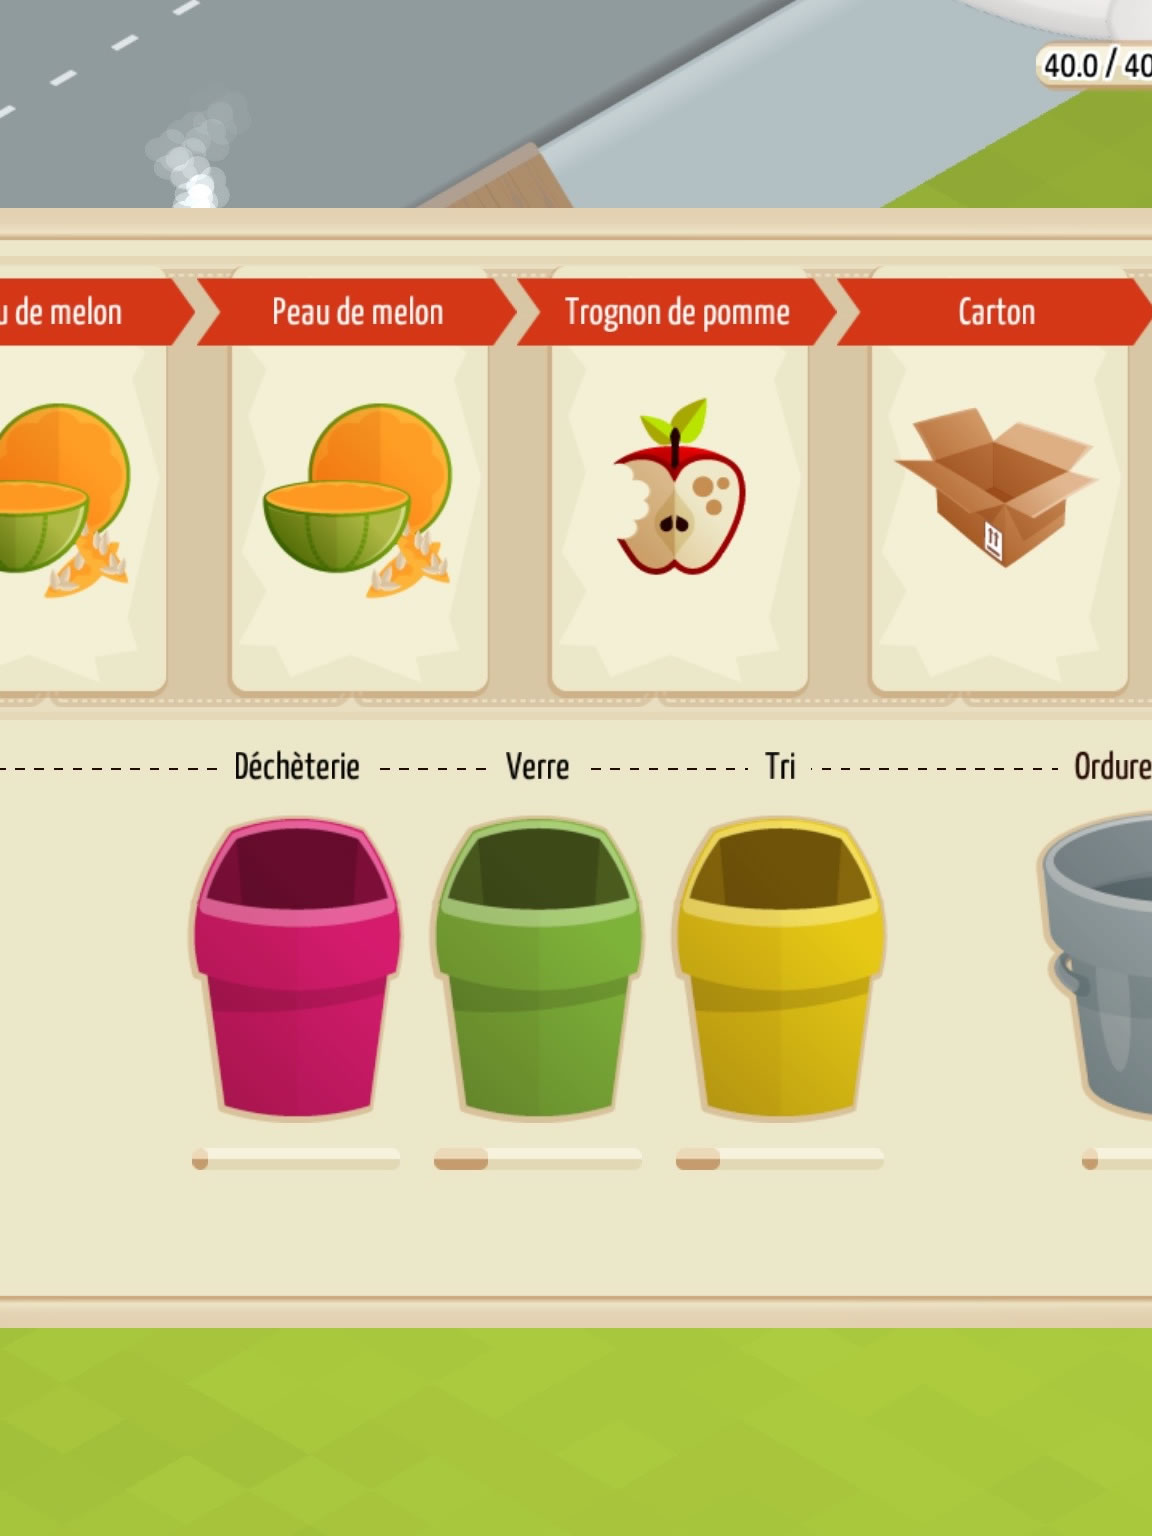 Coming Soon Compost Challenge